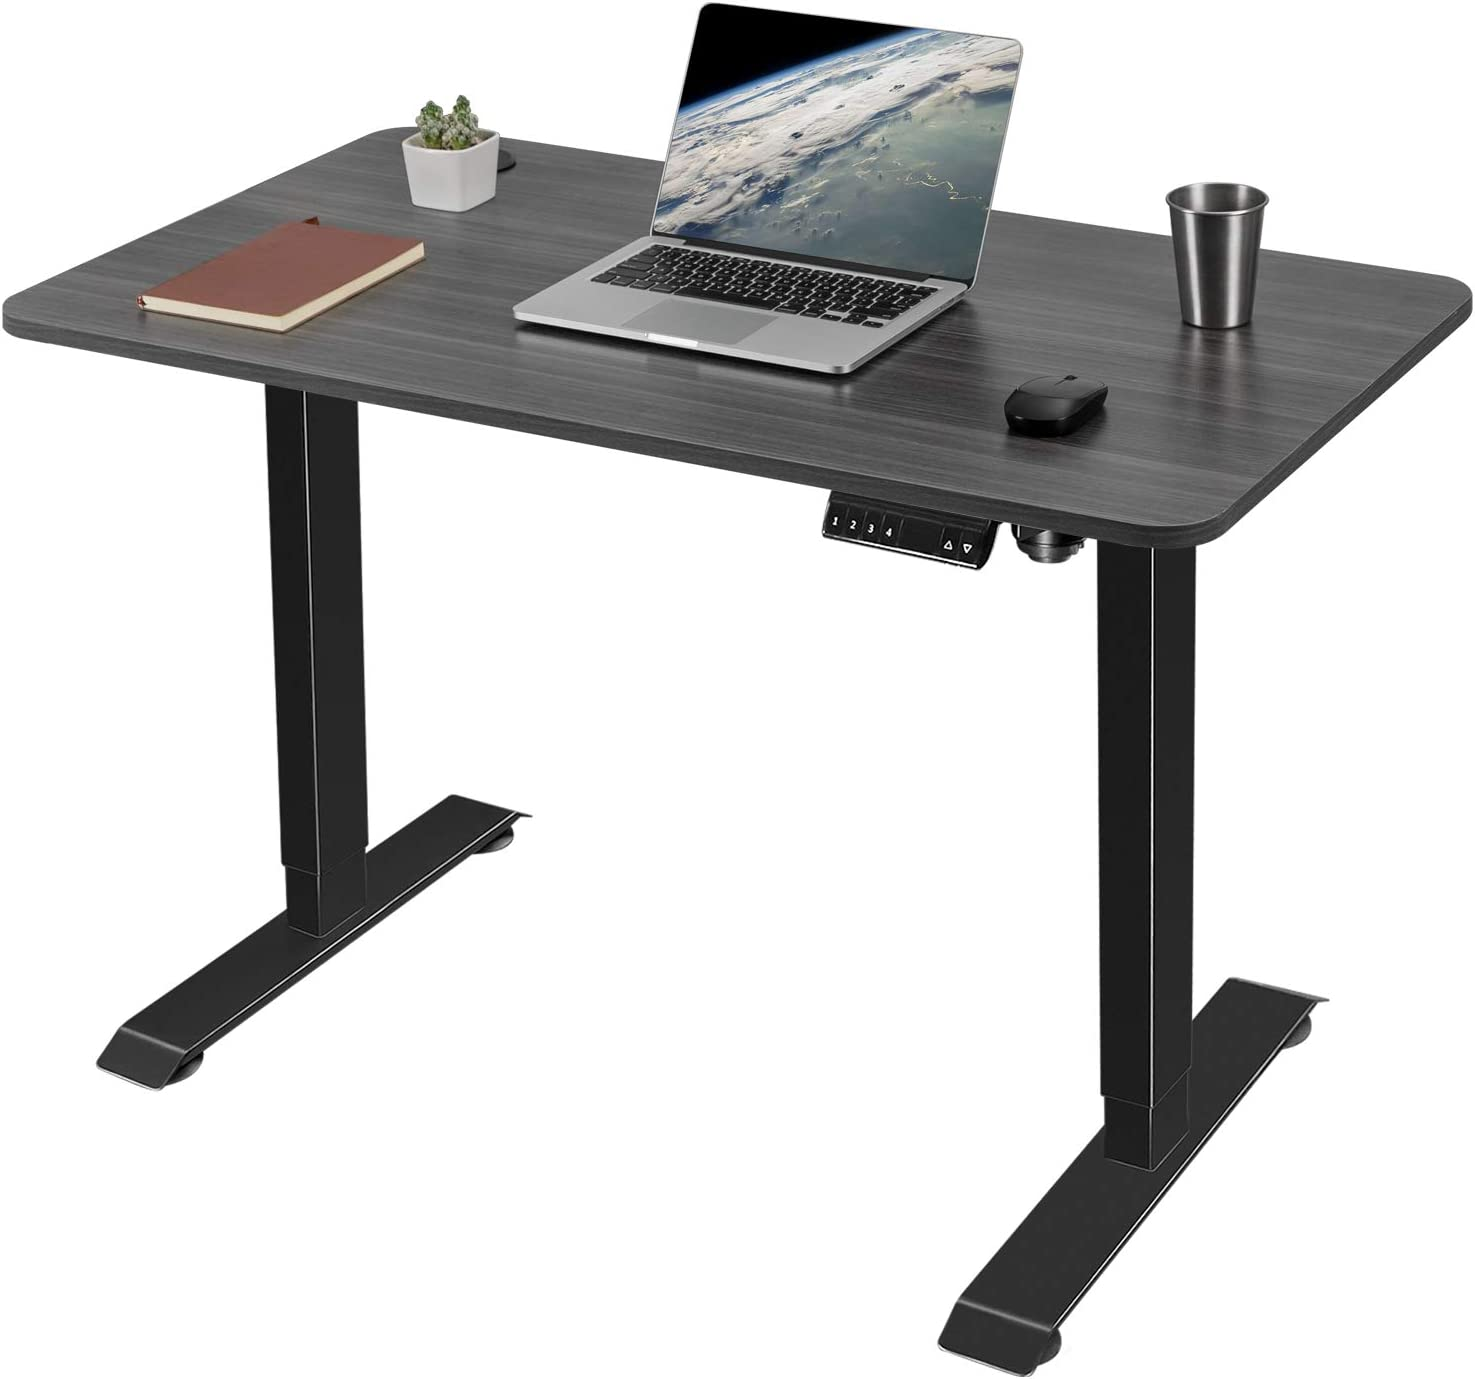 Greesum Electric Height Adjustable Home Office Standing Desk, Modern Design 43-Inch Computer Table for Healthy Working, Gray